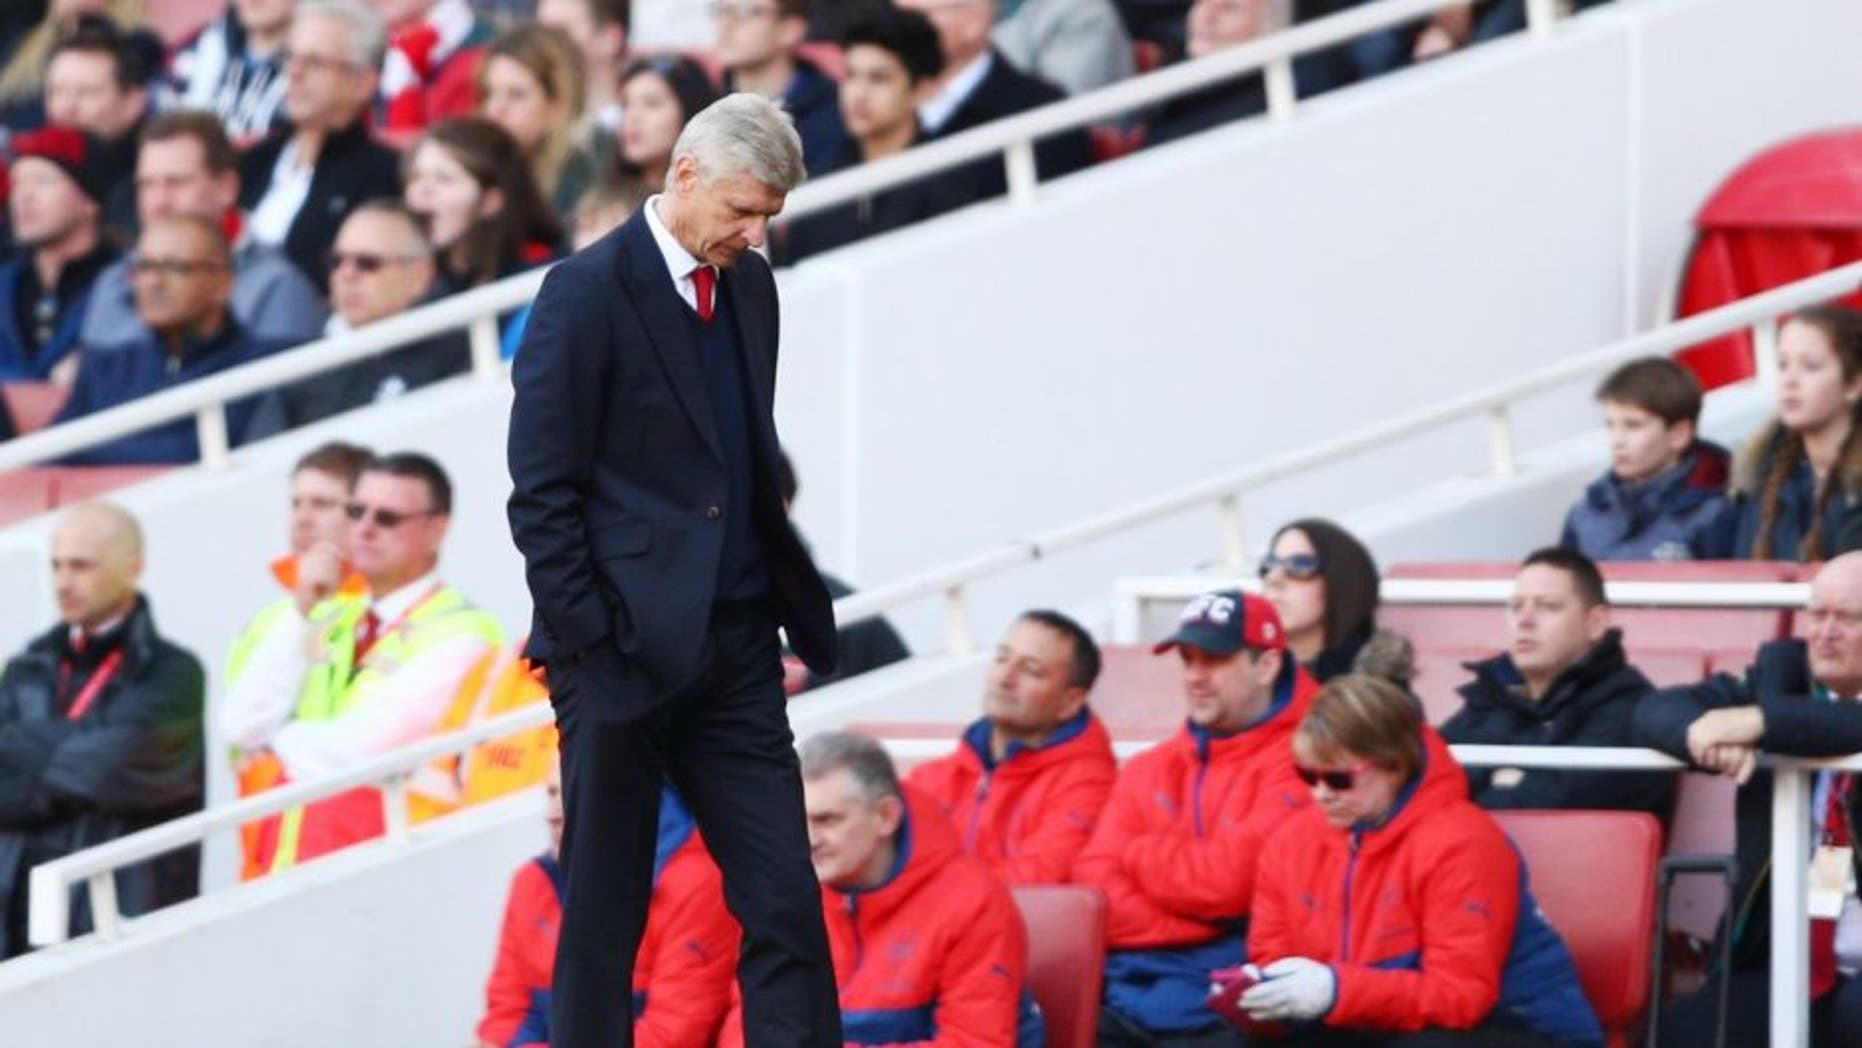 during the Barclays Premier League match between Arsenal and Crystal Palace at the Emirates Stadium on April 17, 2016 in London, England.